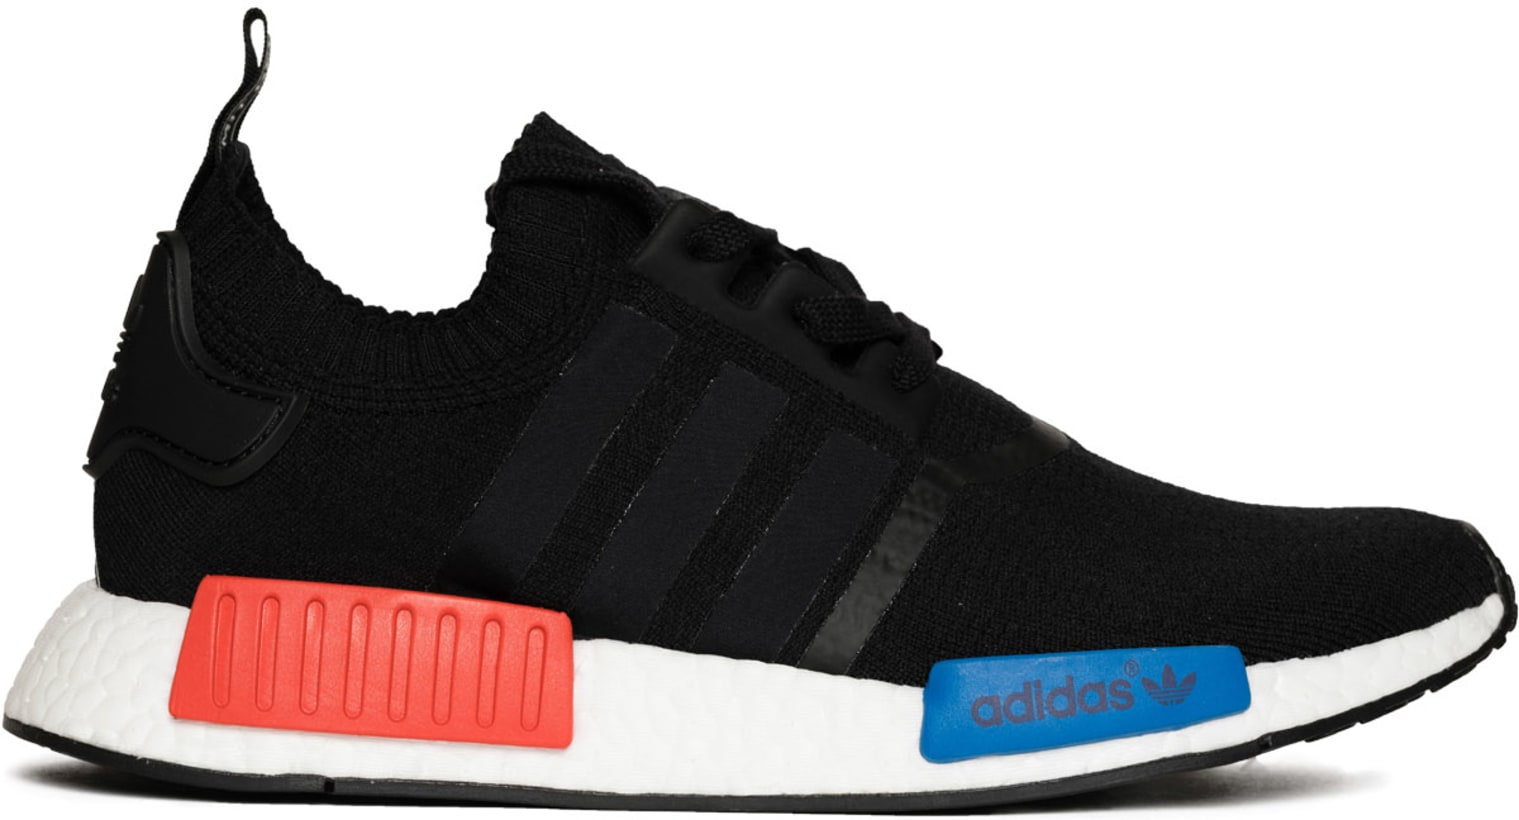 new concept fd8b6 f5993 adidas Originals - NMD R1 Primeknit OG Sneakers - Core Black/Lush Red